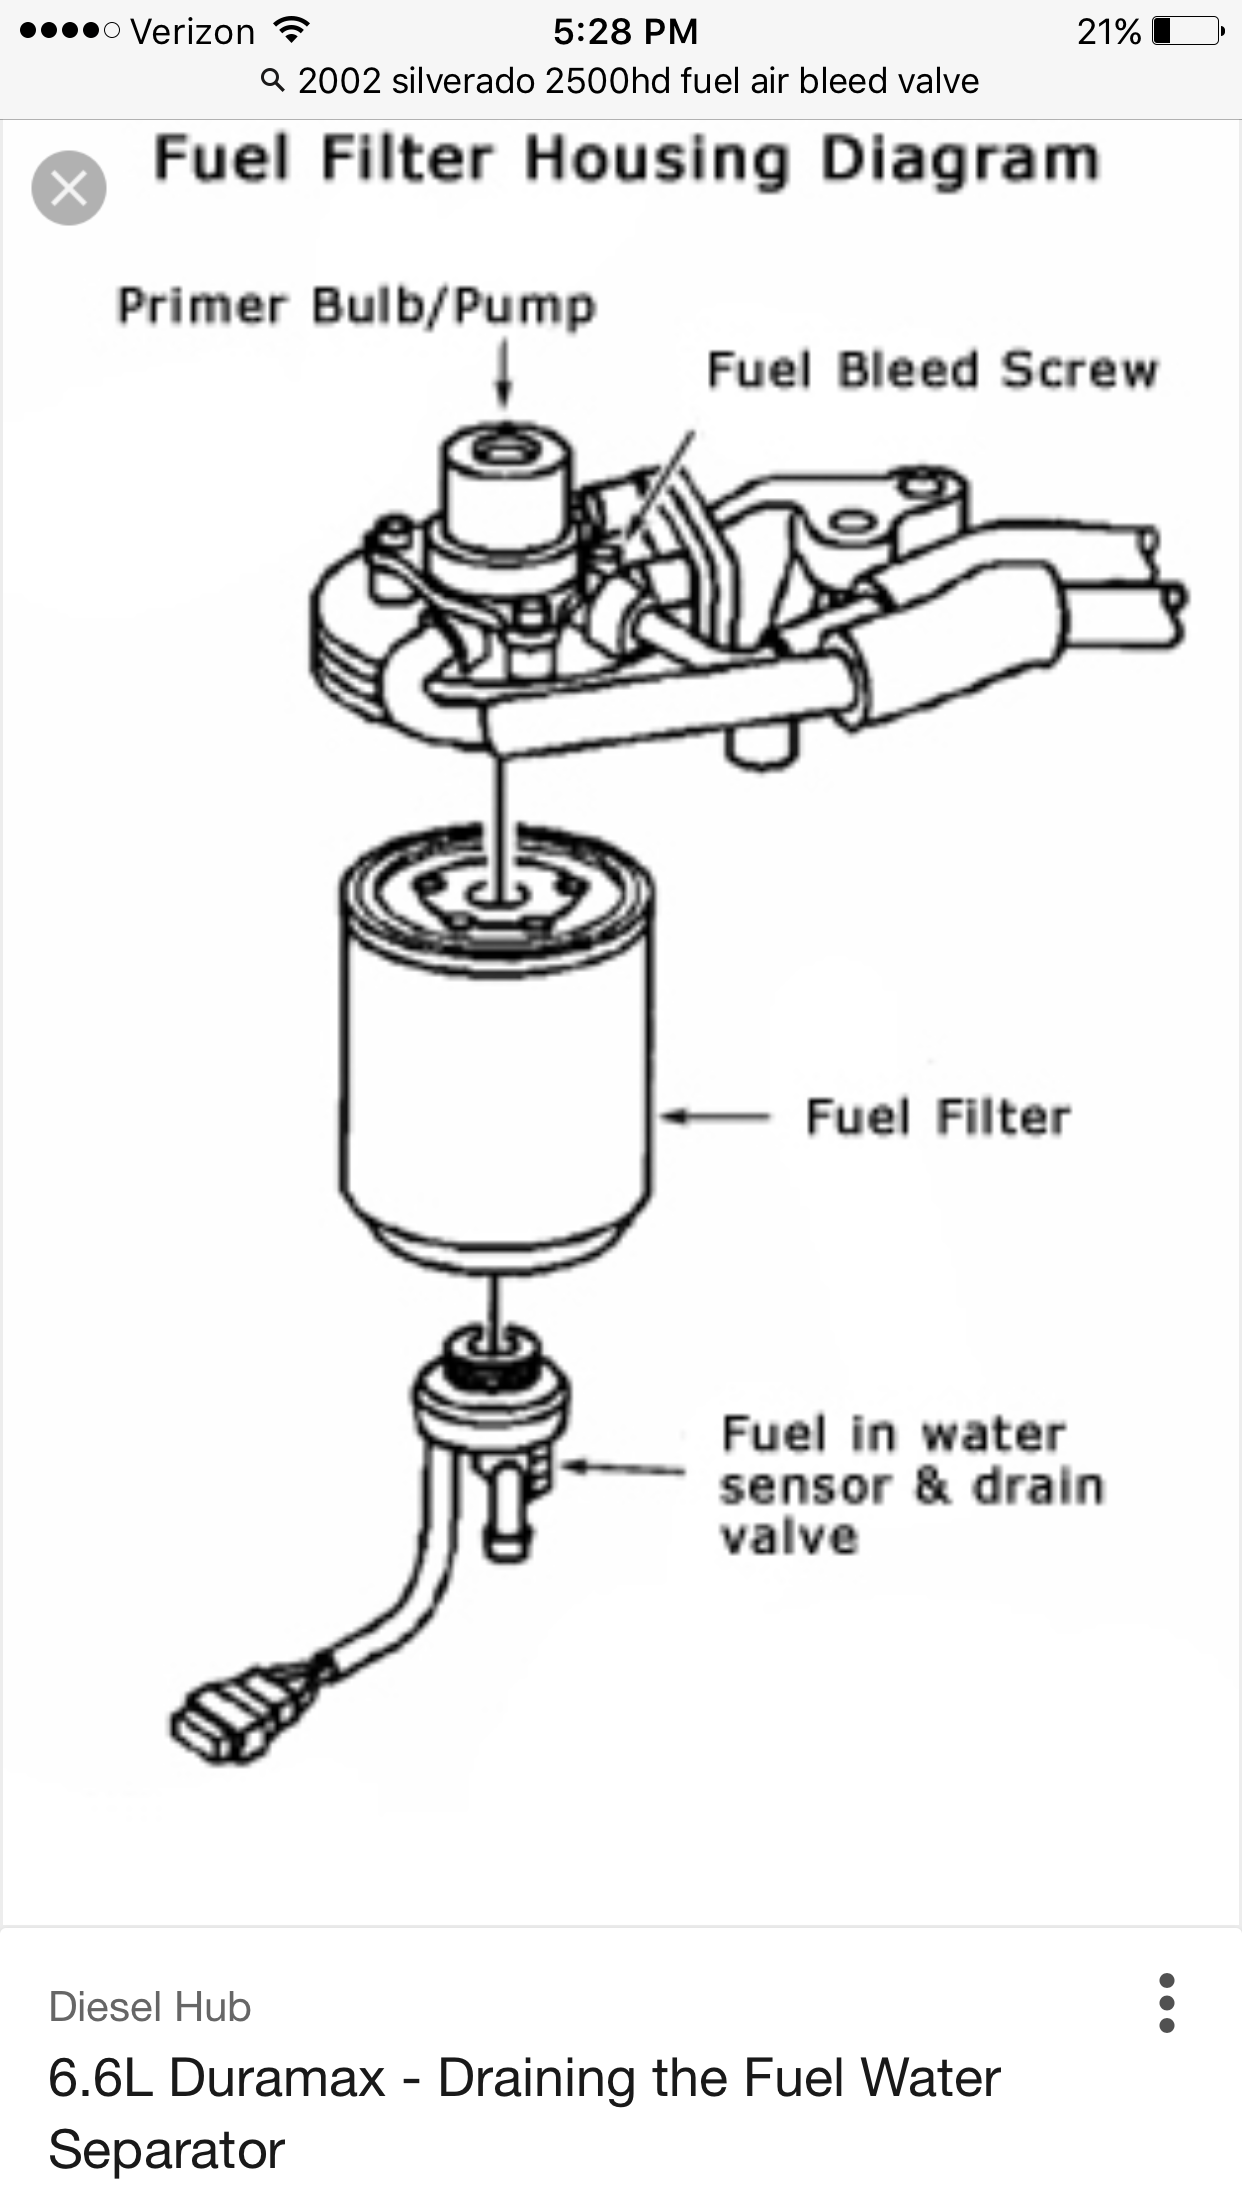 6 5 Fuel Filter Housing Diagram - Data Wiring Diagrams  Explorer Fuel Filter Location on 03 explorer wheels, 03 explorer fuse box diagram, 03 explorer exhaust, 03 explorer crankshaft sensor location, chrysler 300 05 gas filter location, 03 explorer on 24s, 03 explorer horn location, 03 explorer fuel lines, 03 explorer alternator, 03 explorer towing, cummins diesel fuel water separator location, 03 explorer egr valve, 03 explorer water pump, 03 explorer xlt, 03 explorer no heat,